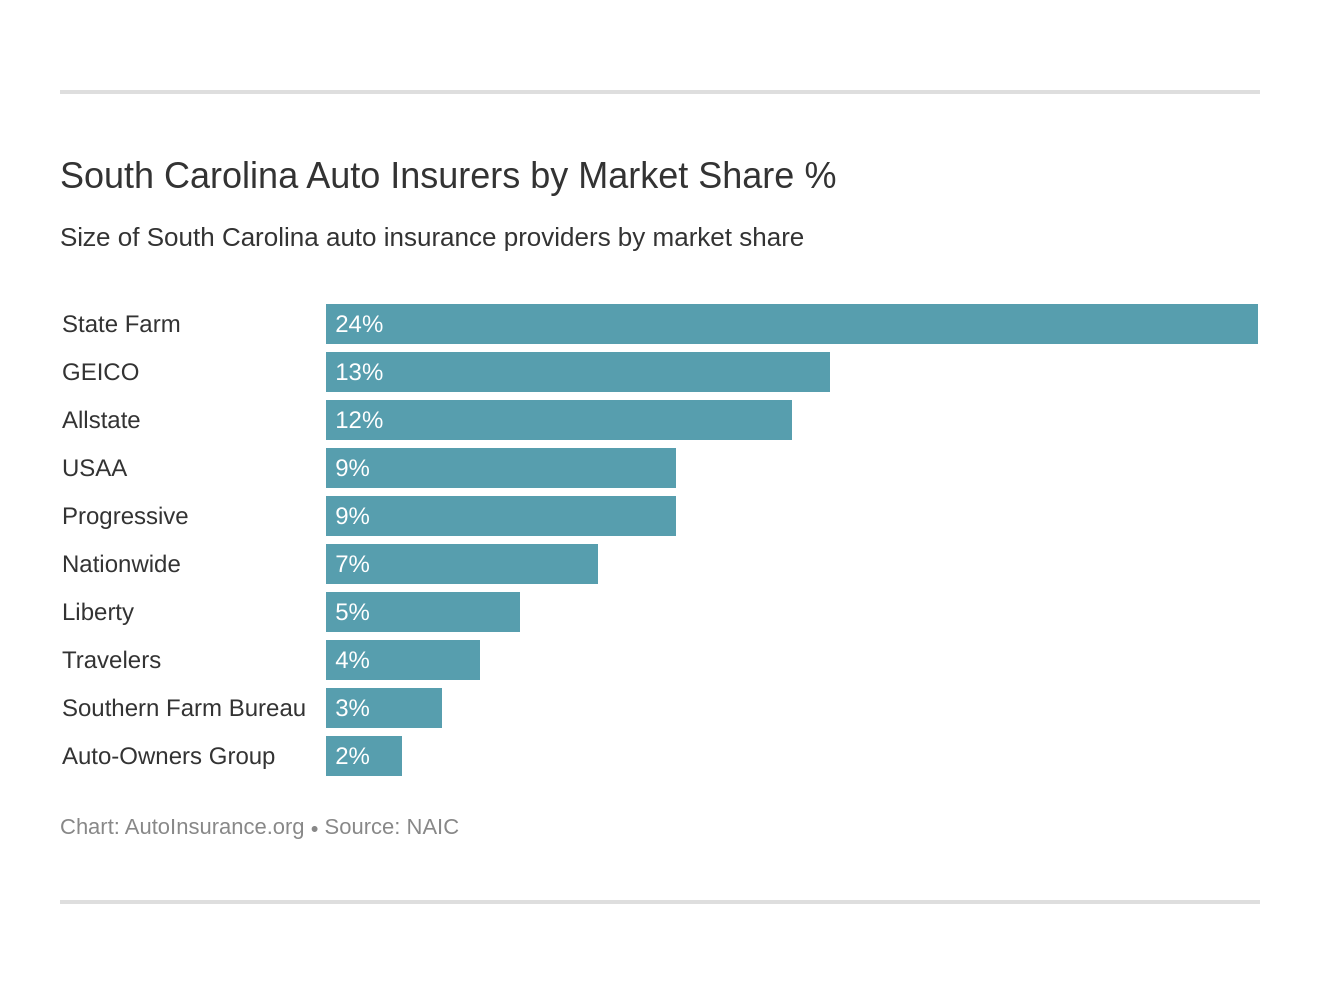 South Carolina Auto Insurers by Market Share %